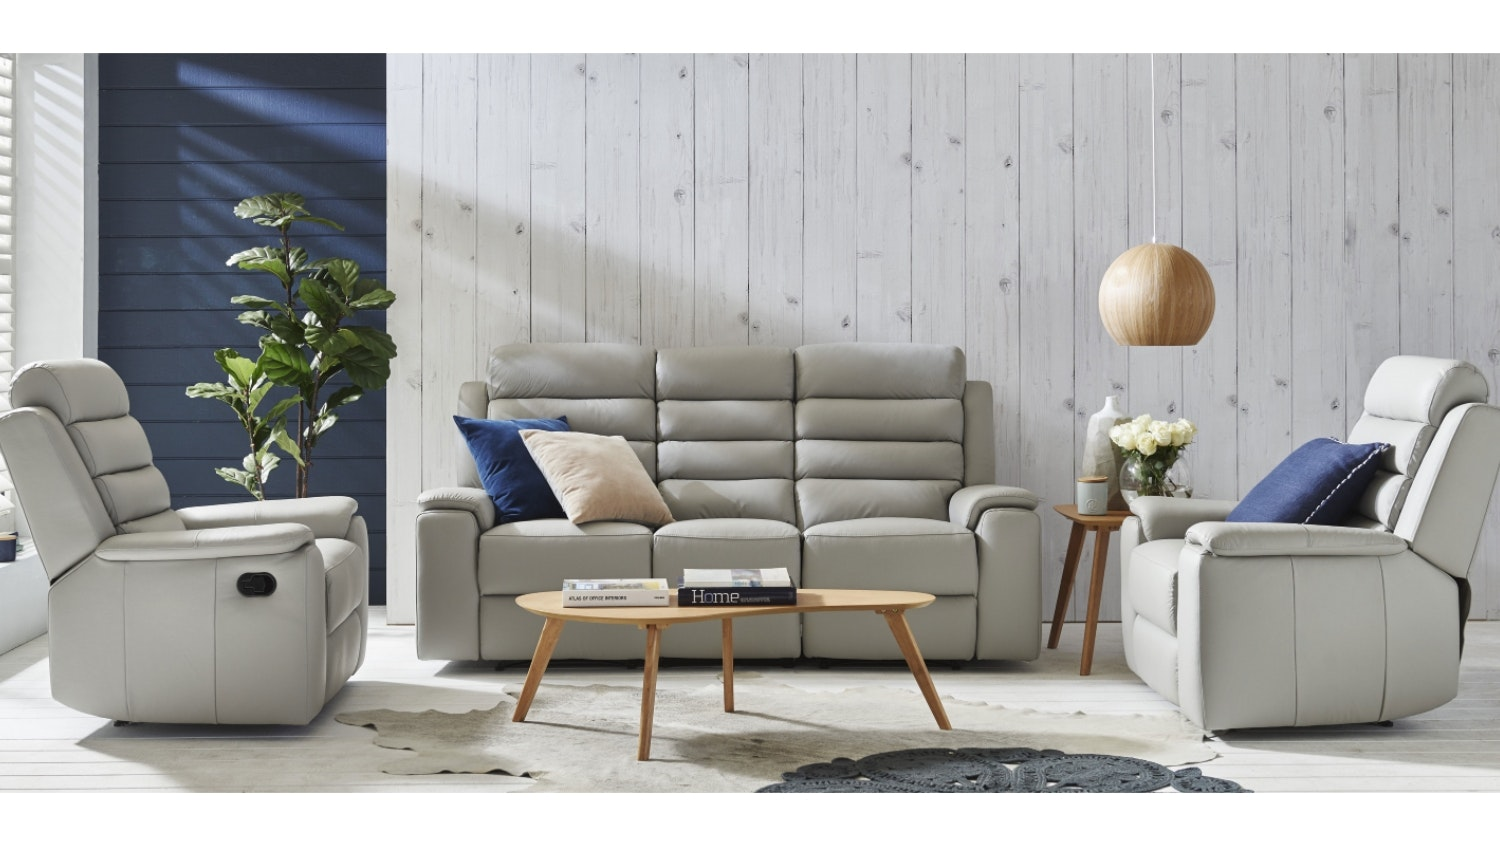 Apolo 3 Piece Leather Recliner Lounge Suite - Light Grey